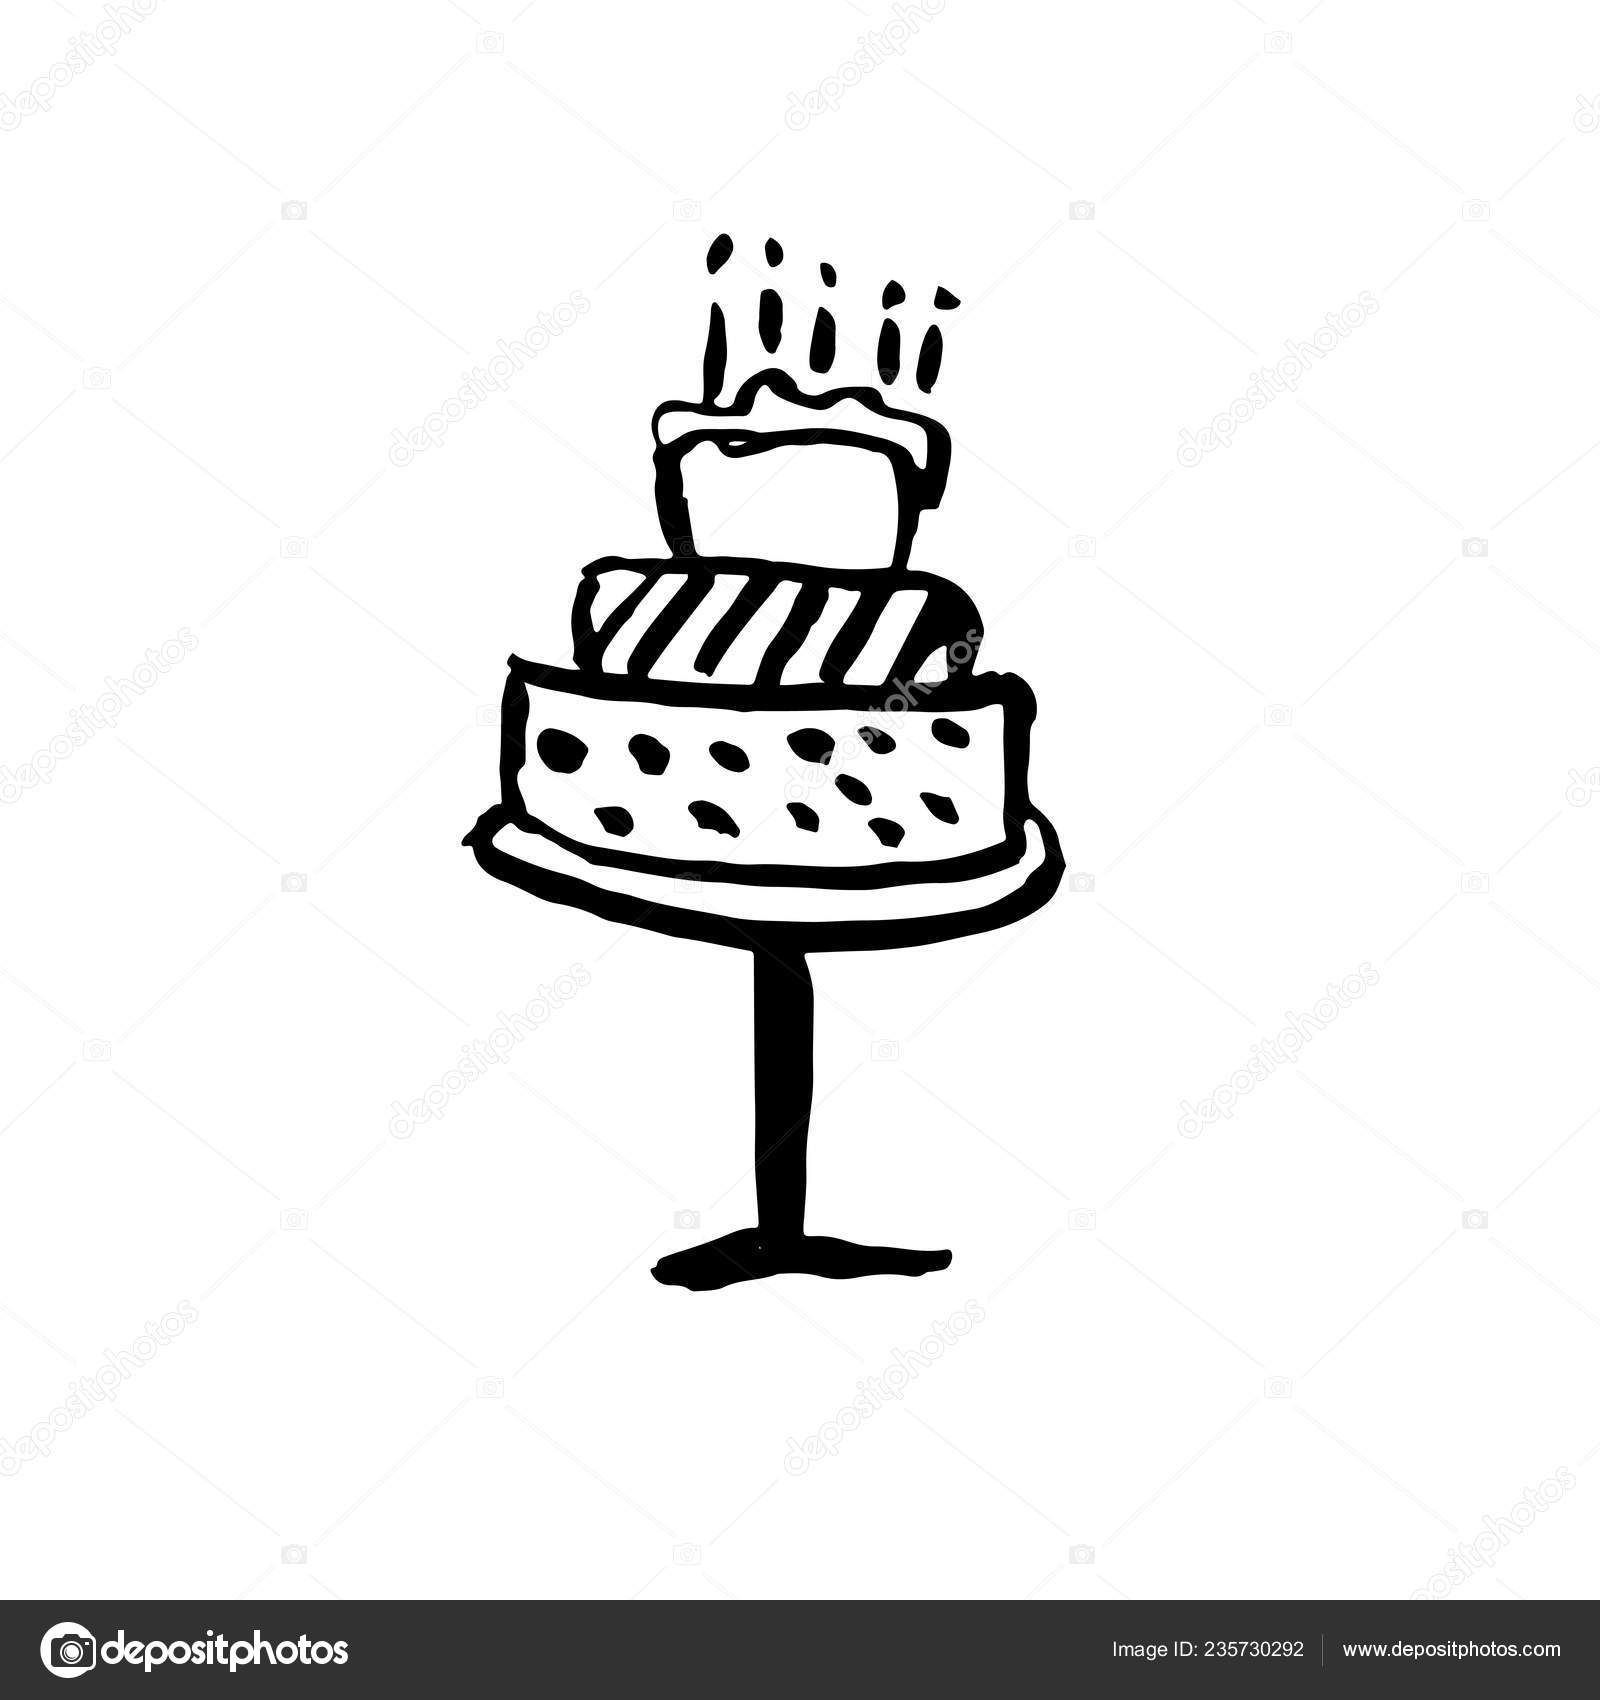 Astounding Birthday Cake With Candles Grunge Icon Vector Illustration Funny Birthday Cards Online Alyptdamsfinfo